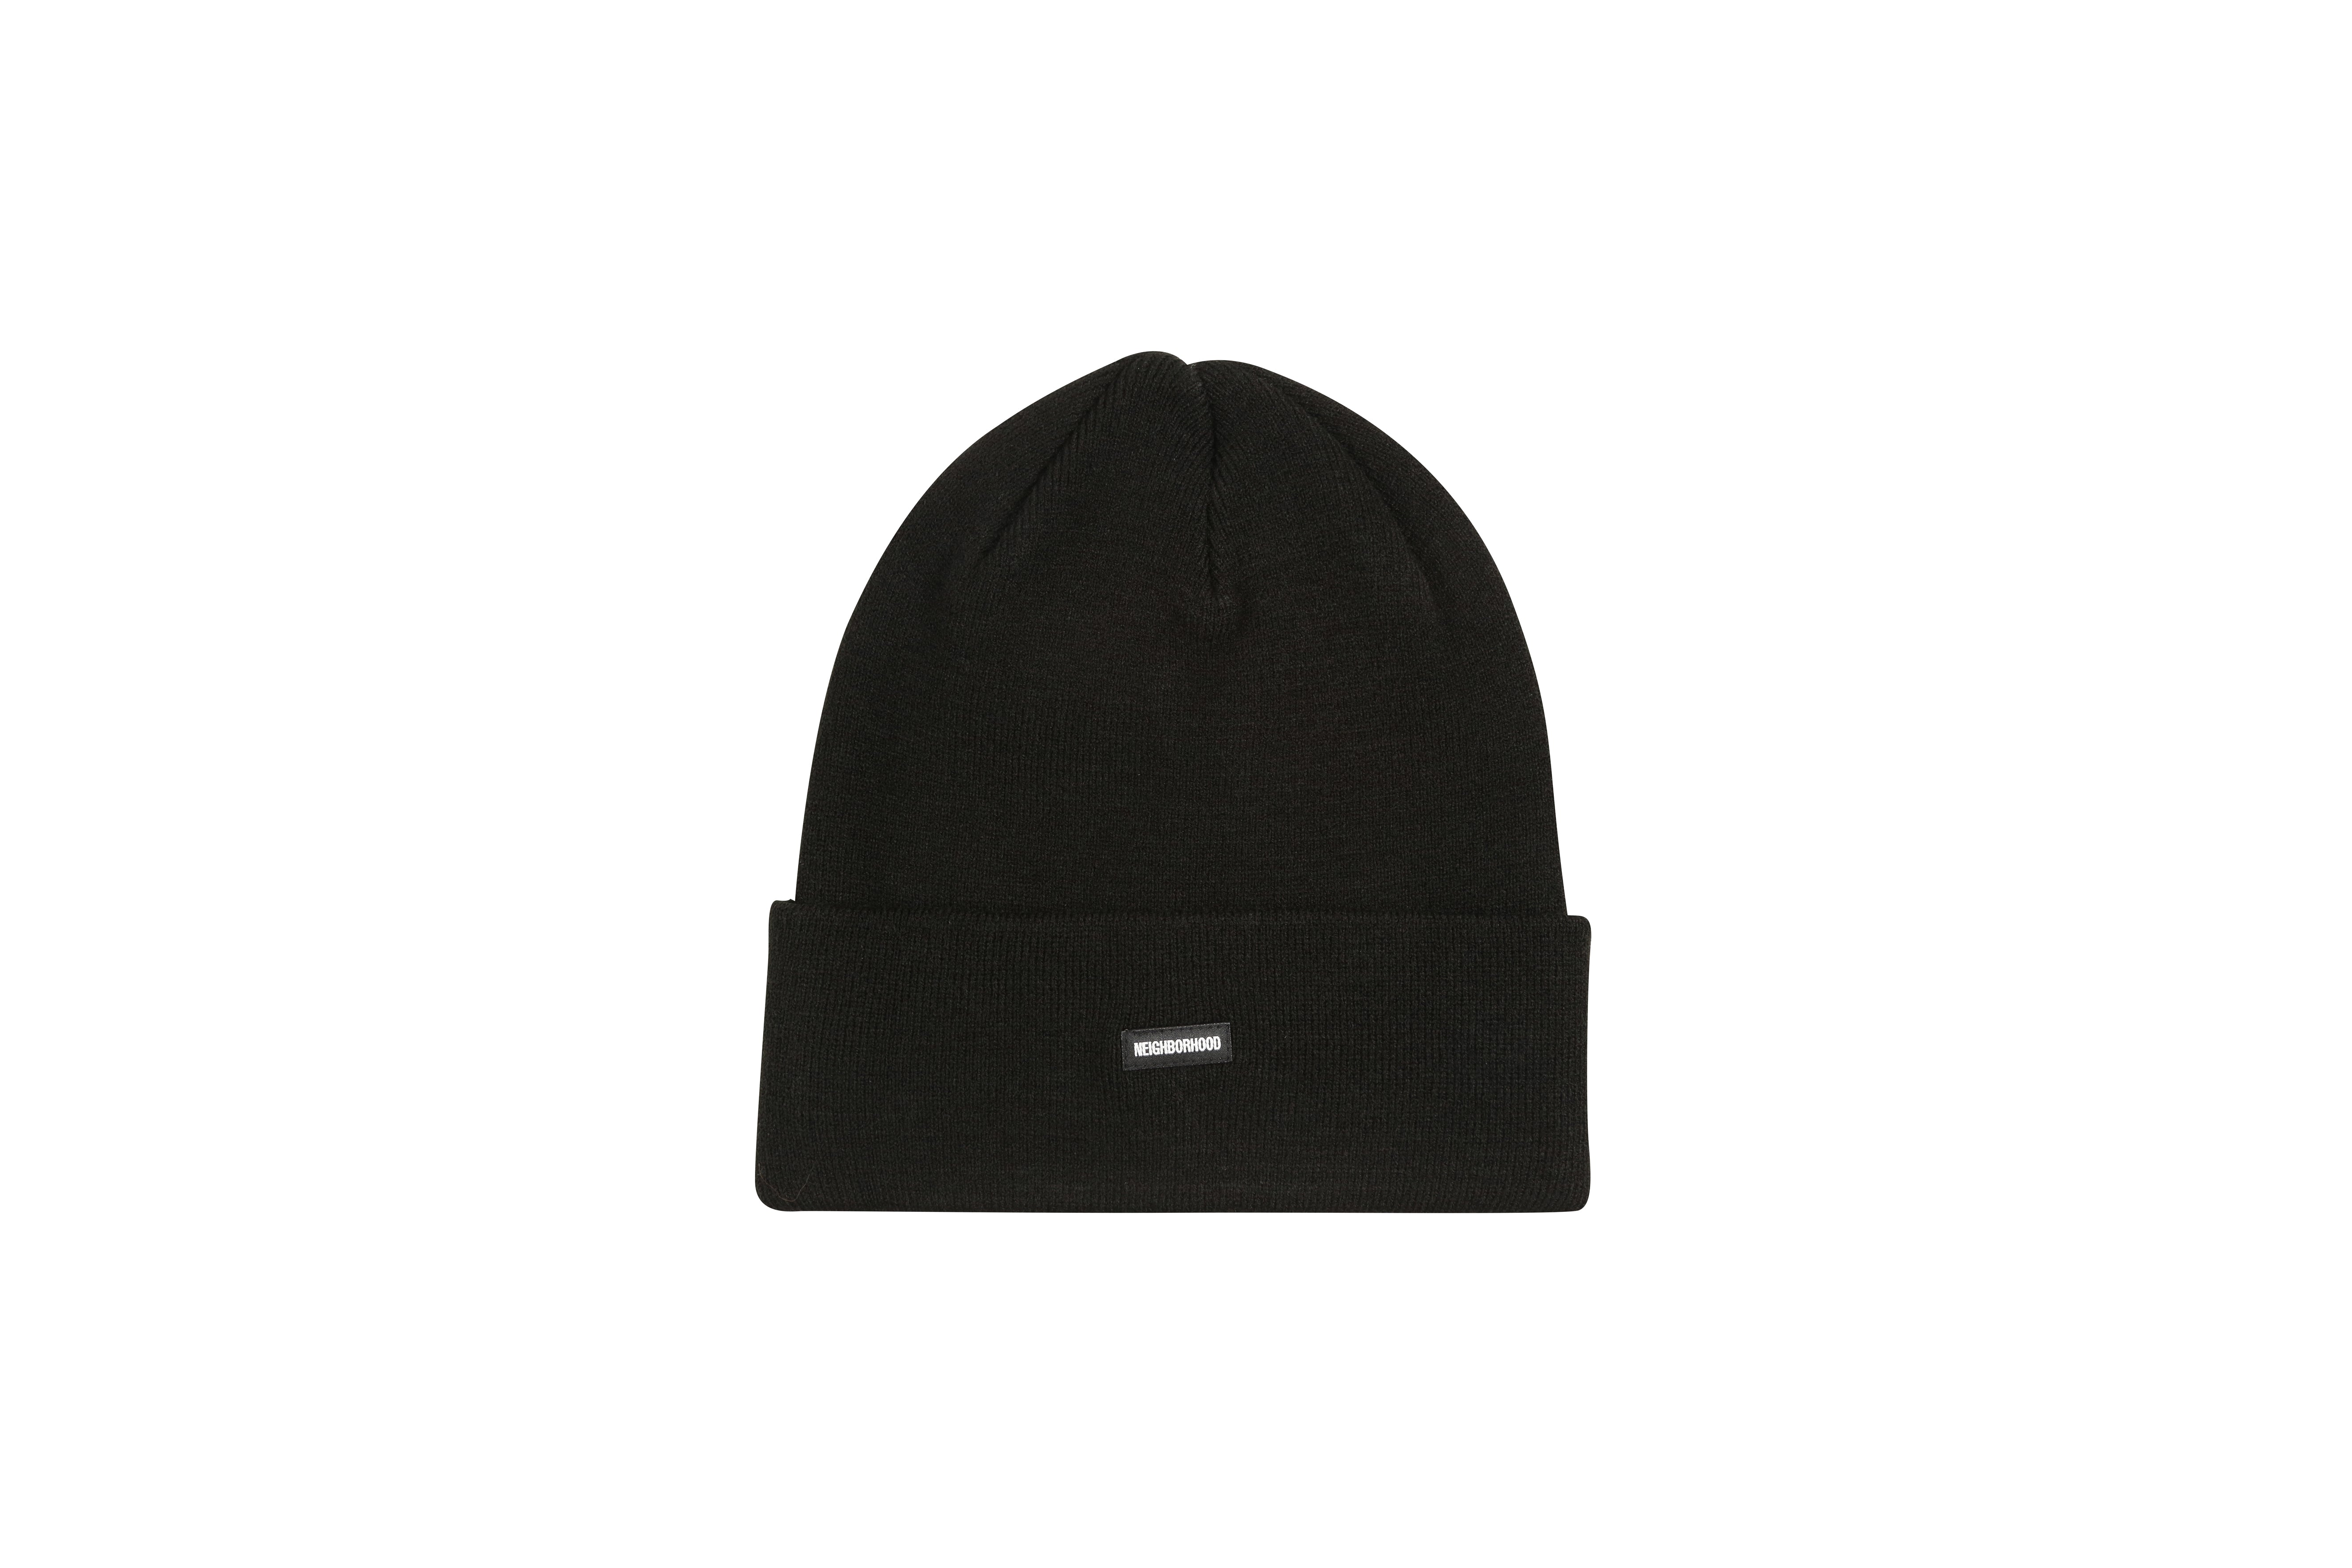 Neighborhood Beanie